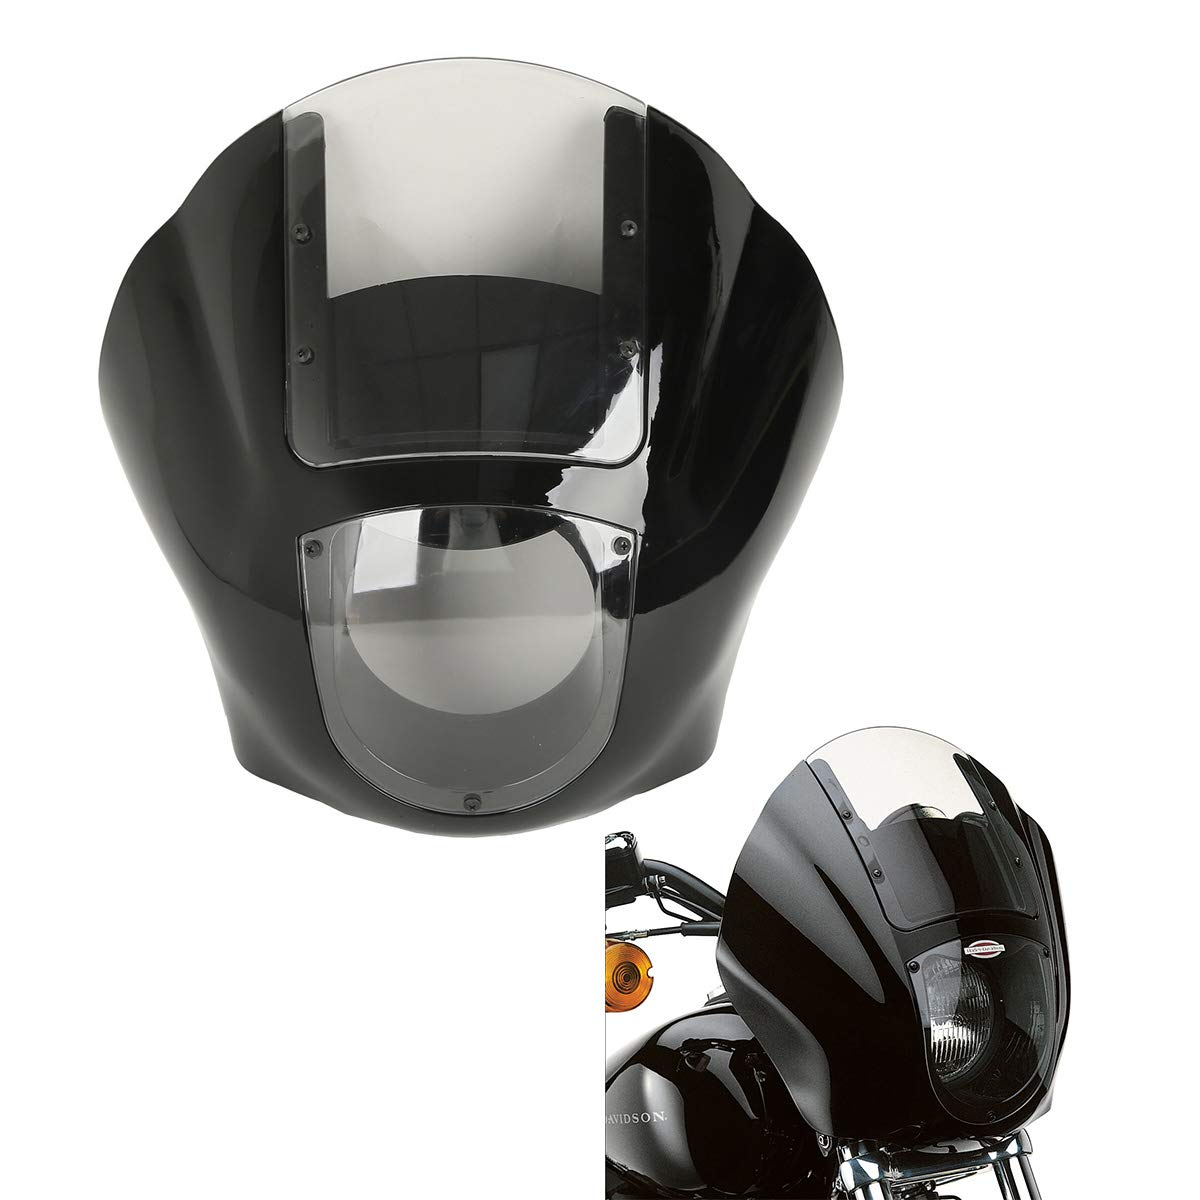 XFMT Detachable Quarter Fairing Kit & Smoke Windshield For Harley Sportster 1988-2016 Dyna 1995-2005(Requires the installation of Docking Hardware Kit P/N 58164-96A.)